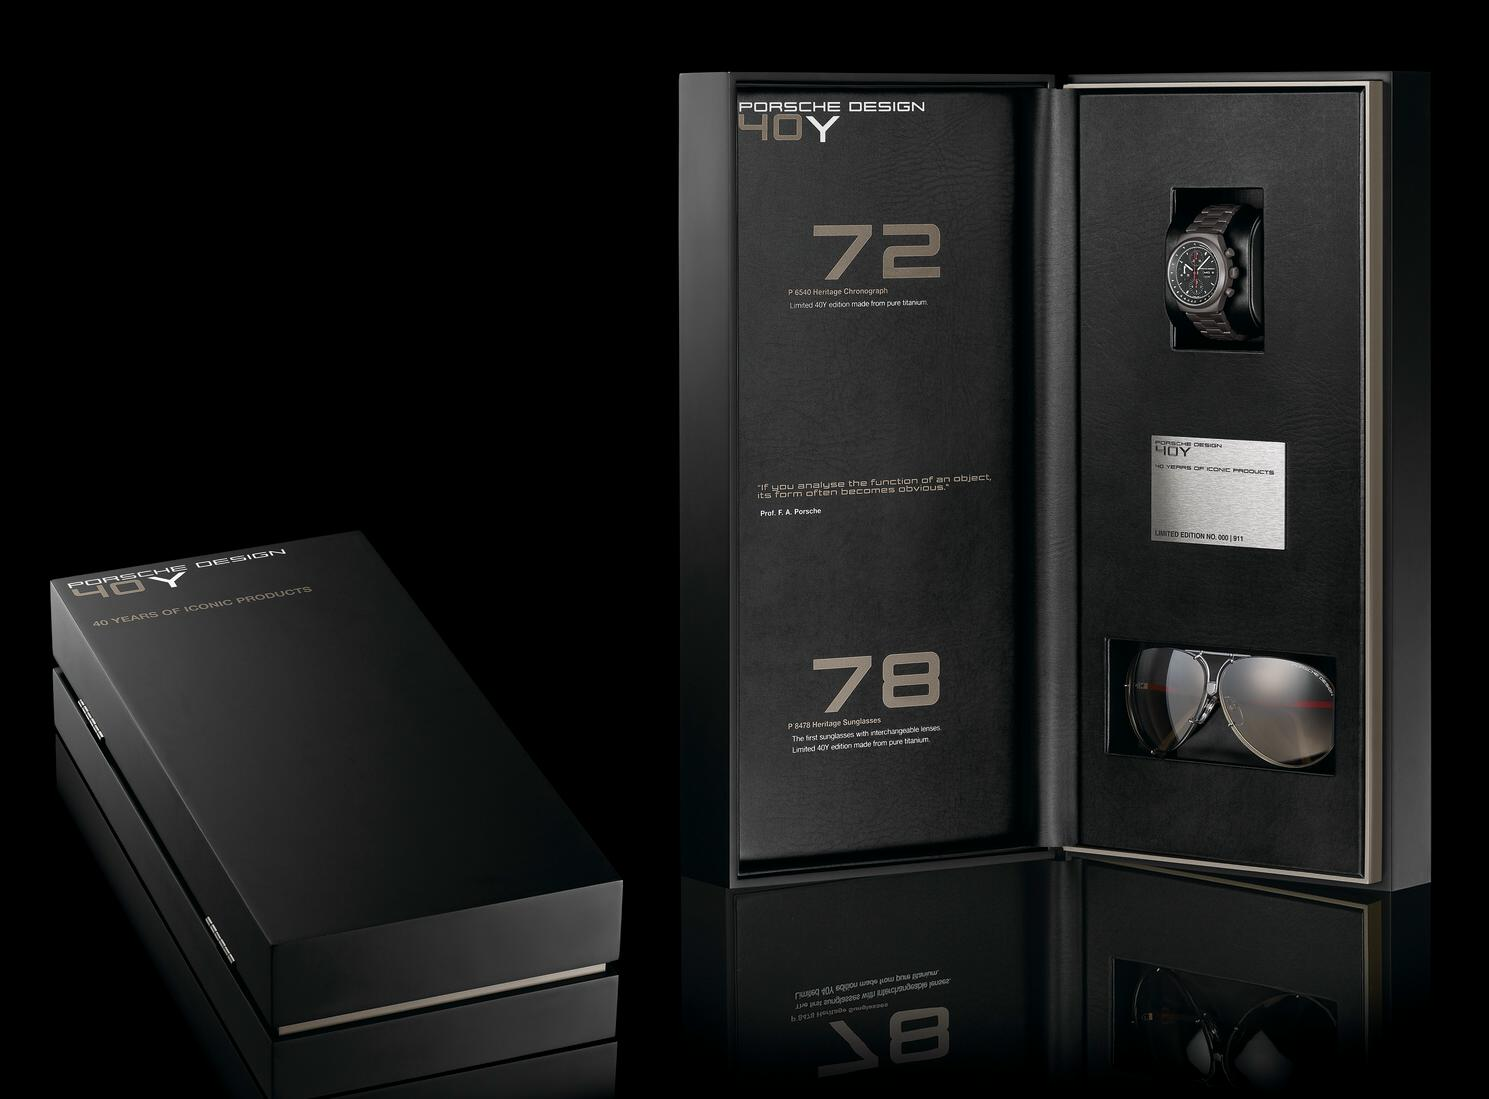 Porsche Design 40y Of Iconic Products Set Unfinished Man